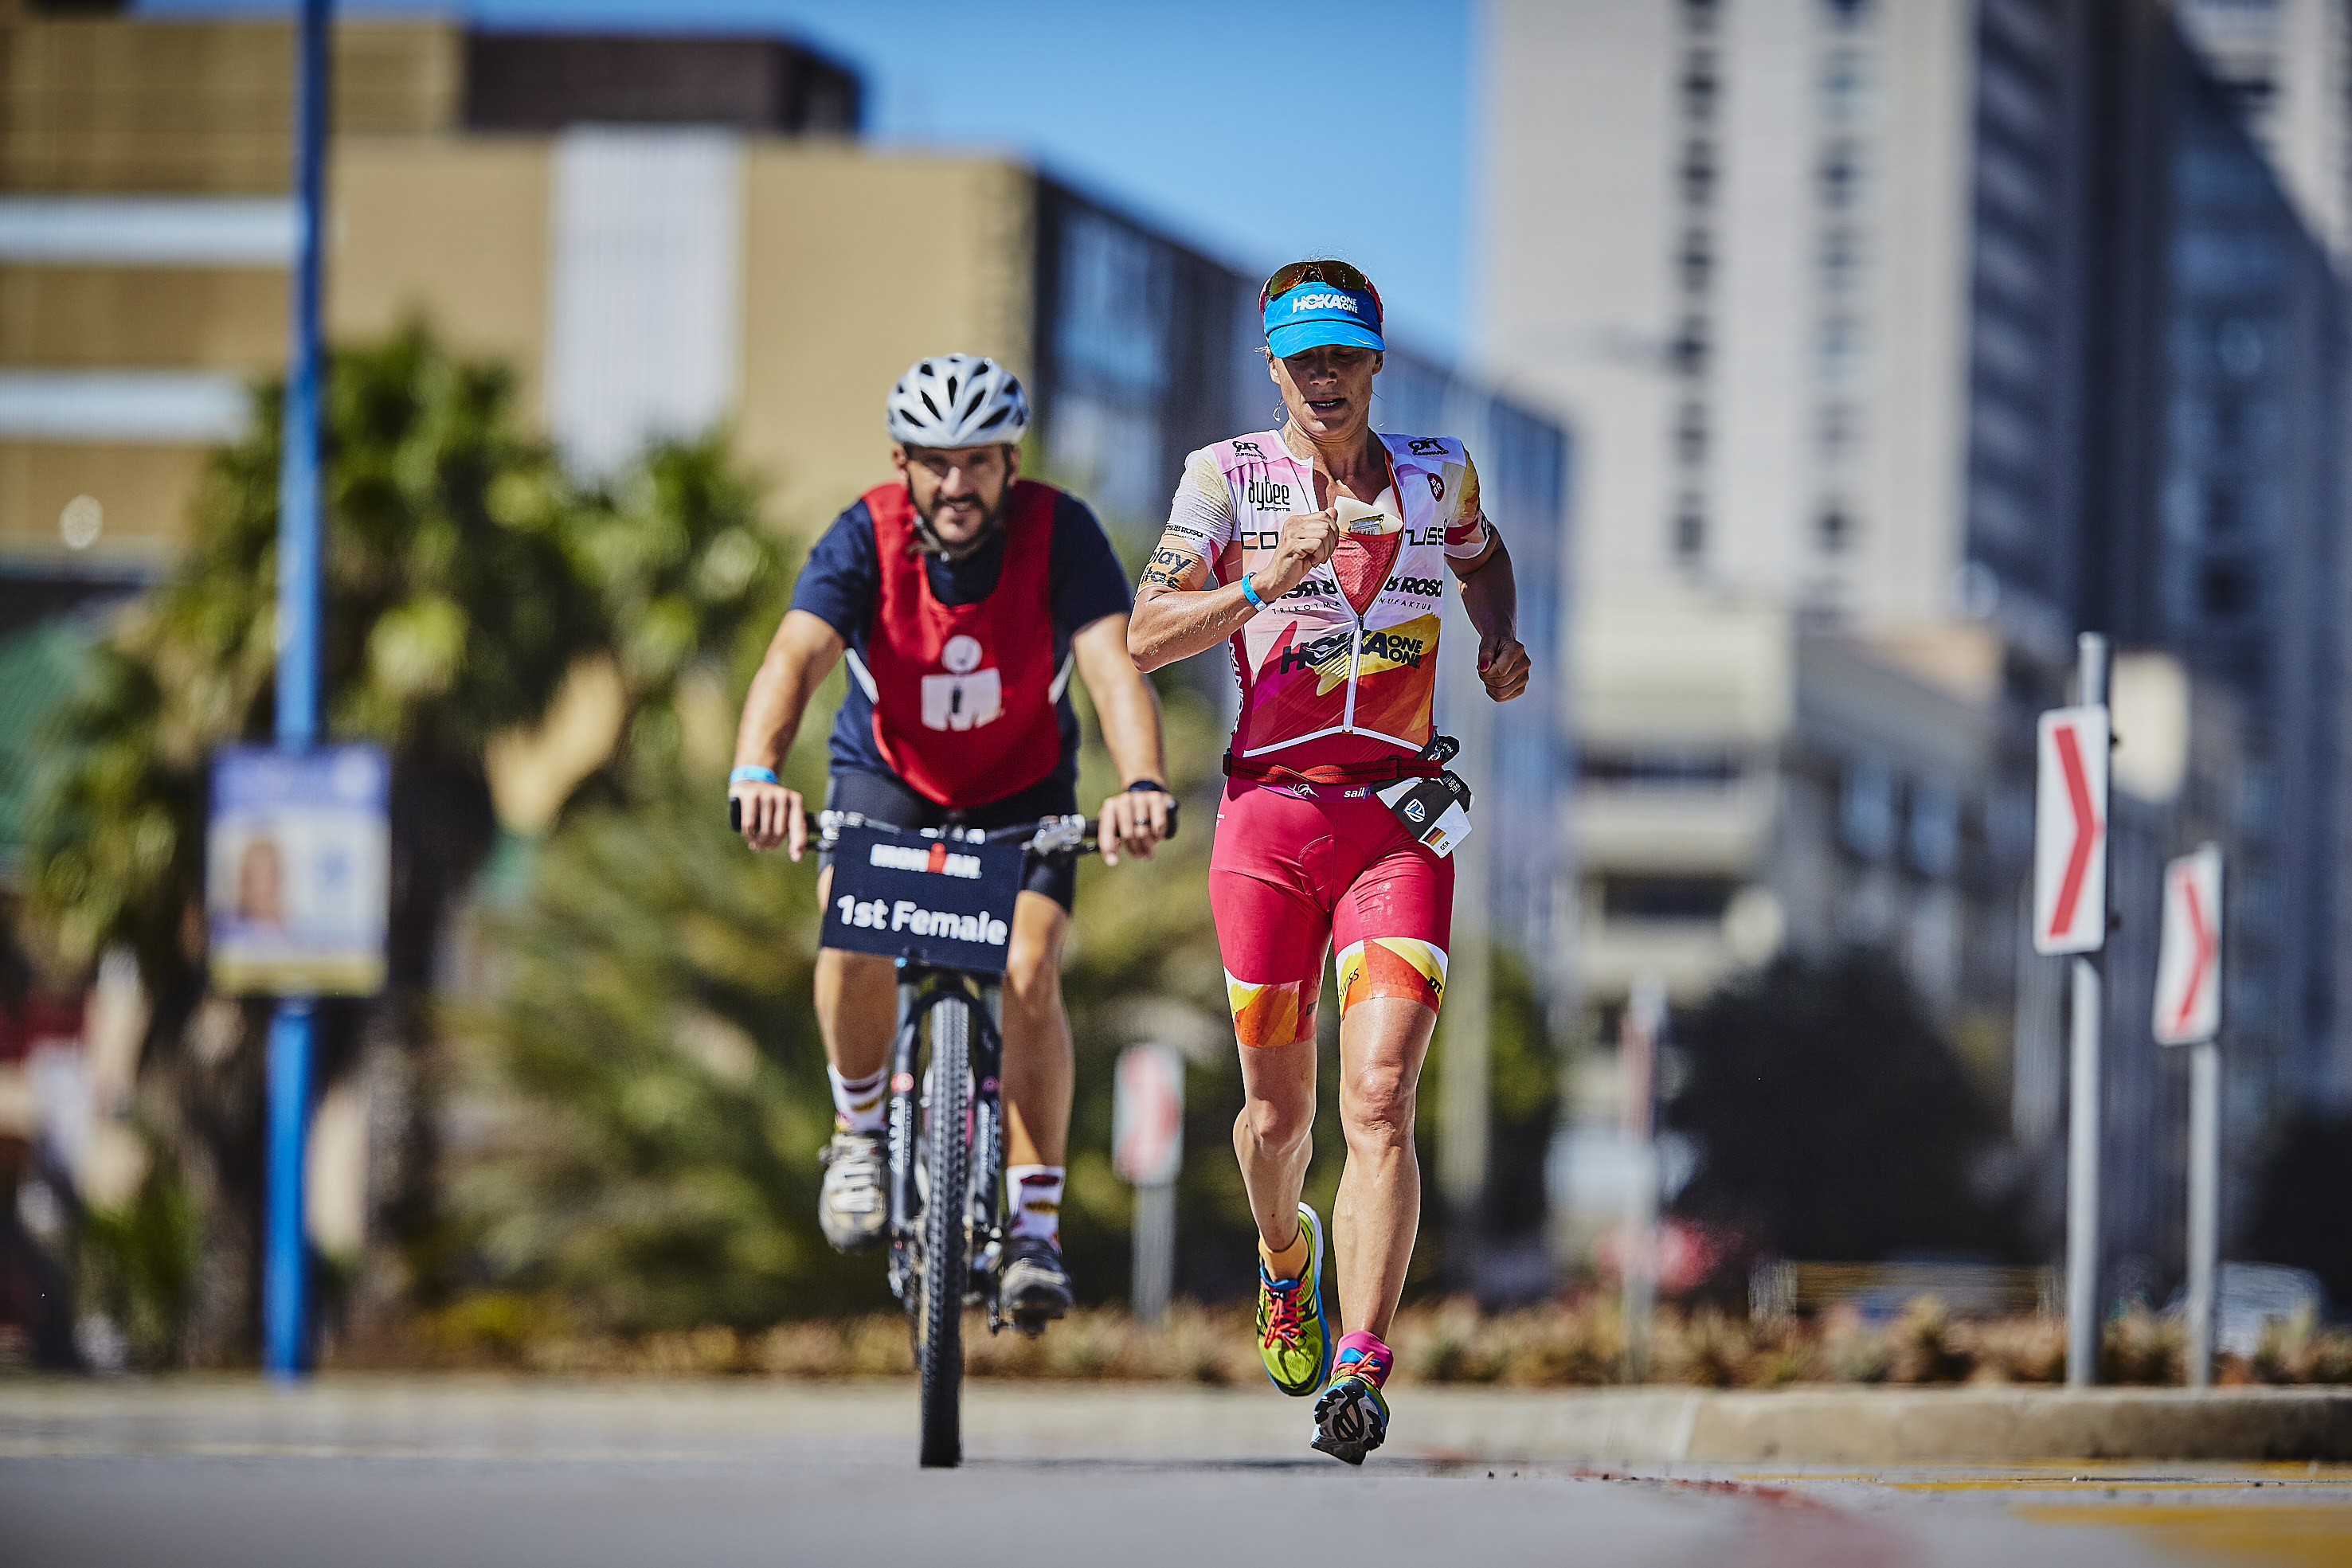 Ironman South Africa - leading the run